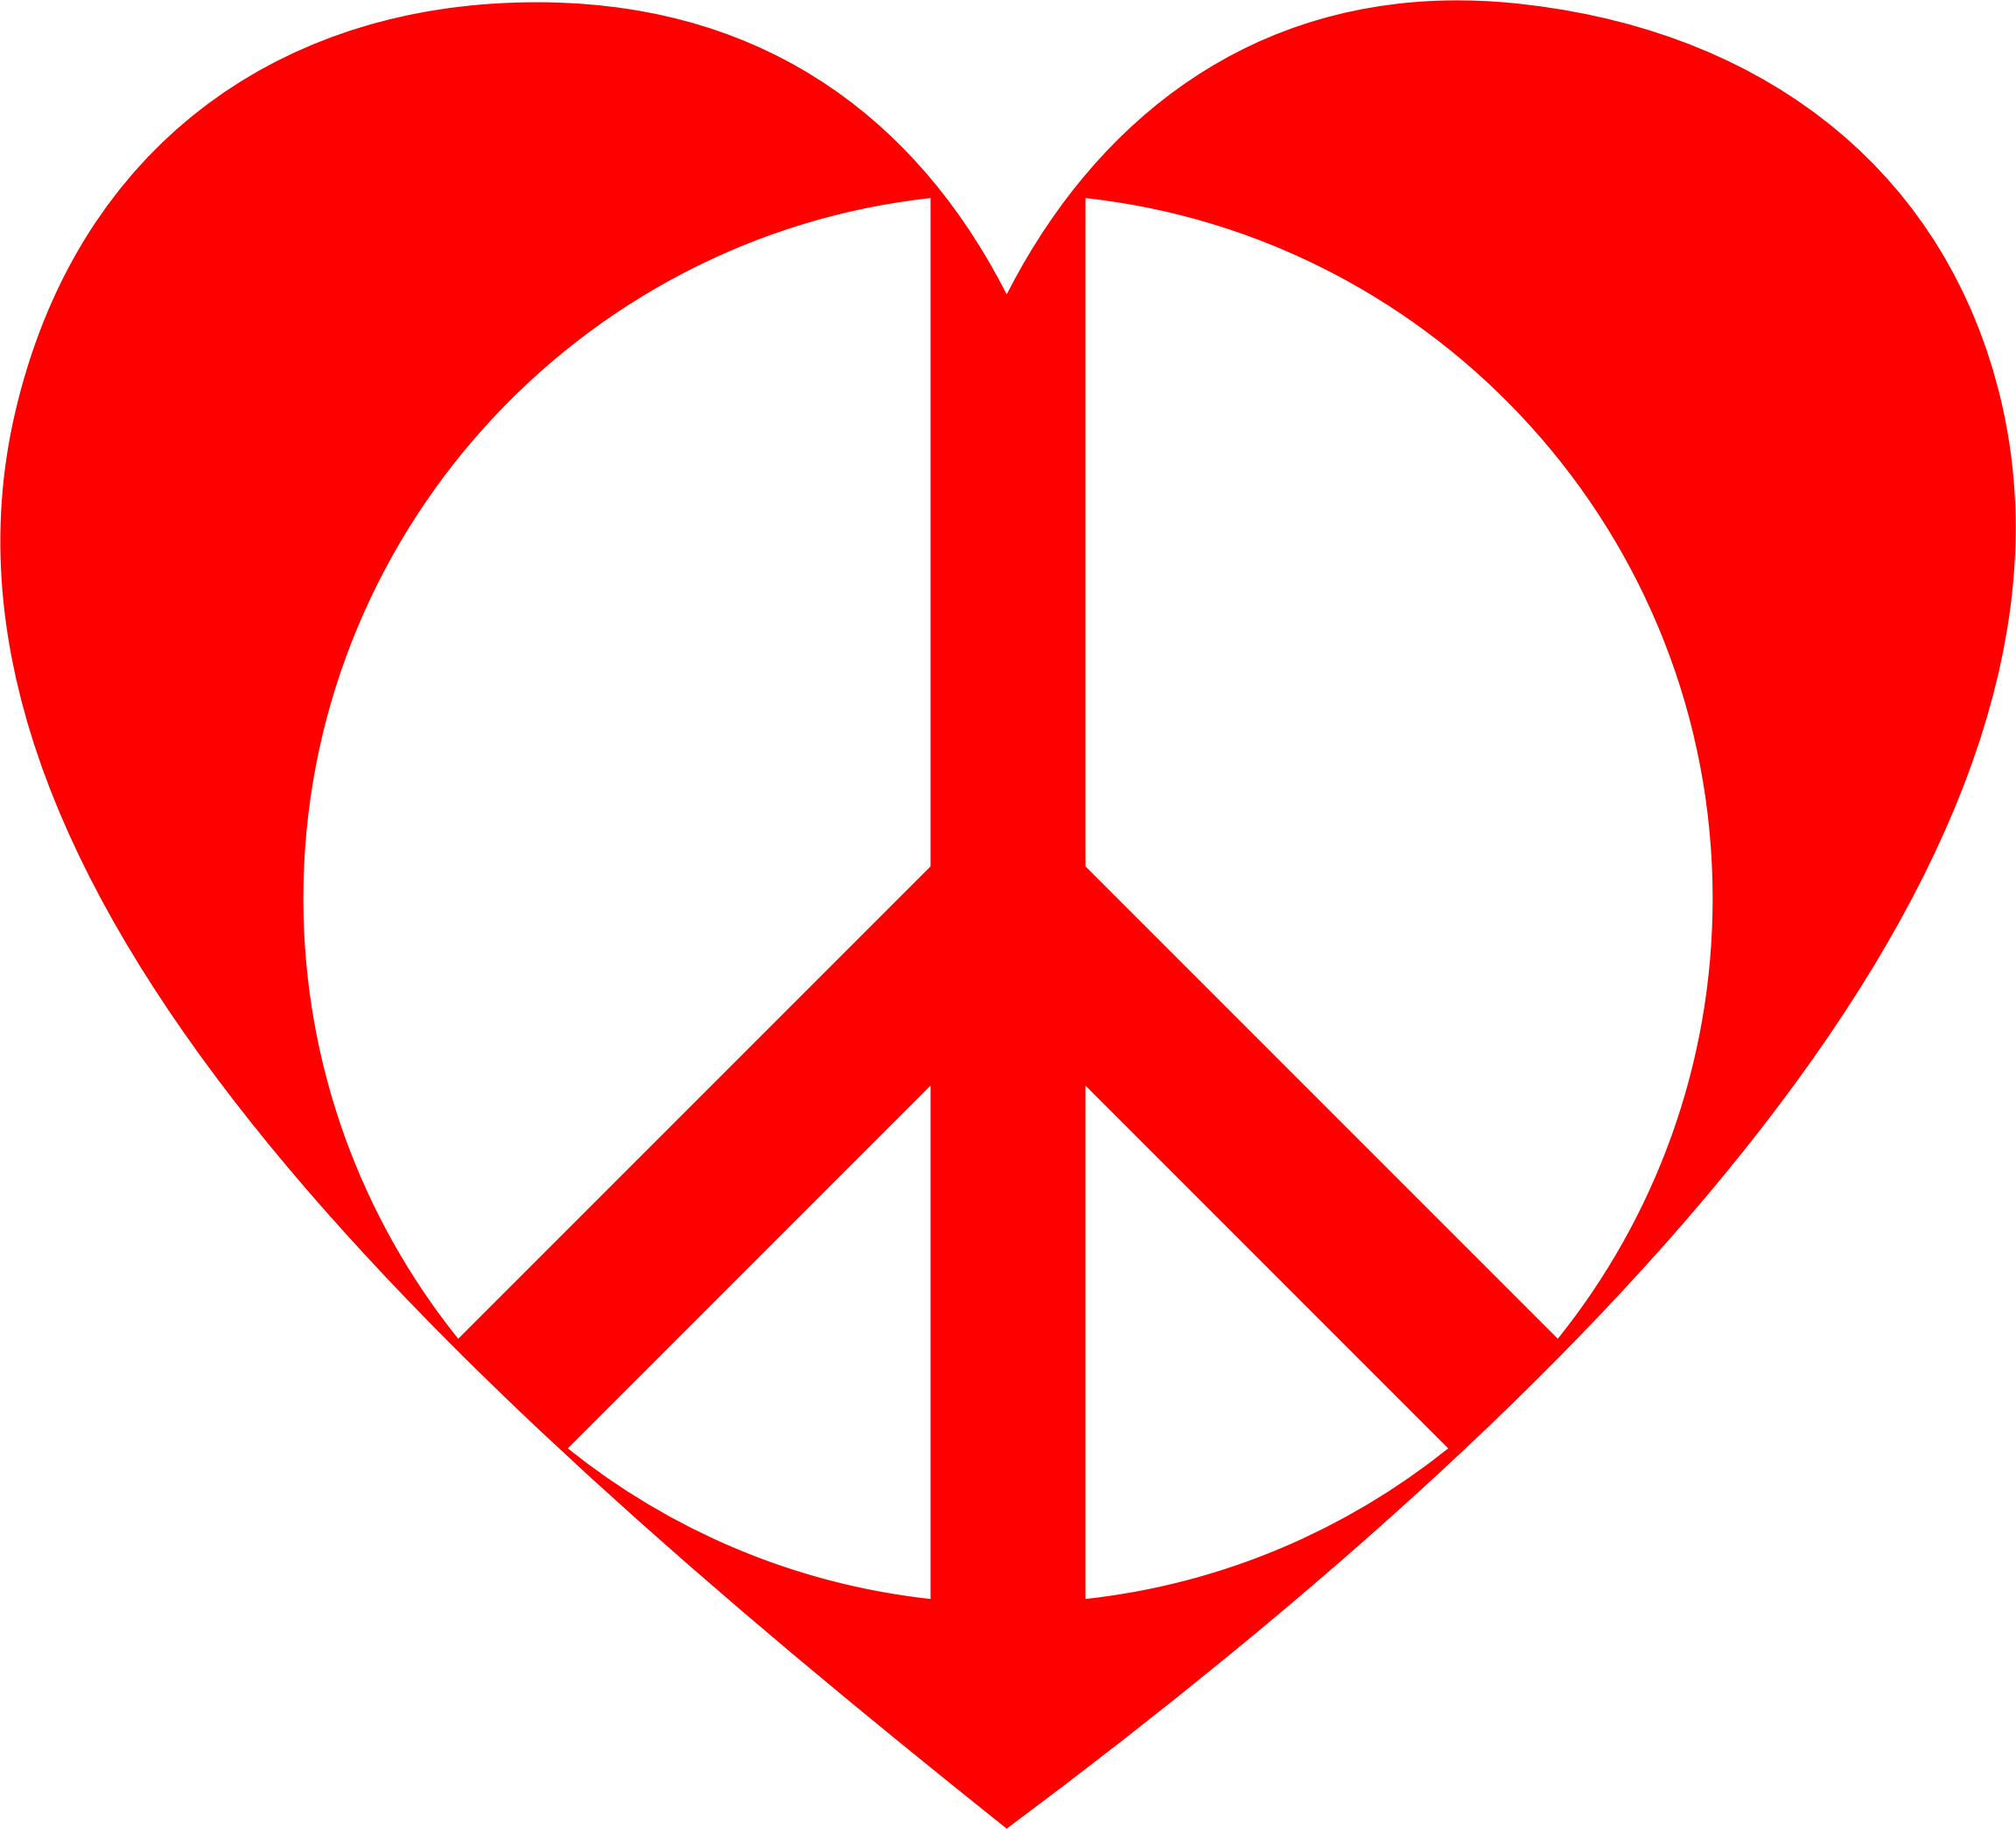 Peace Heart Mark II by GDJ